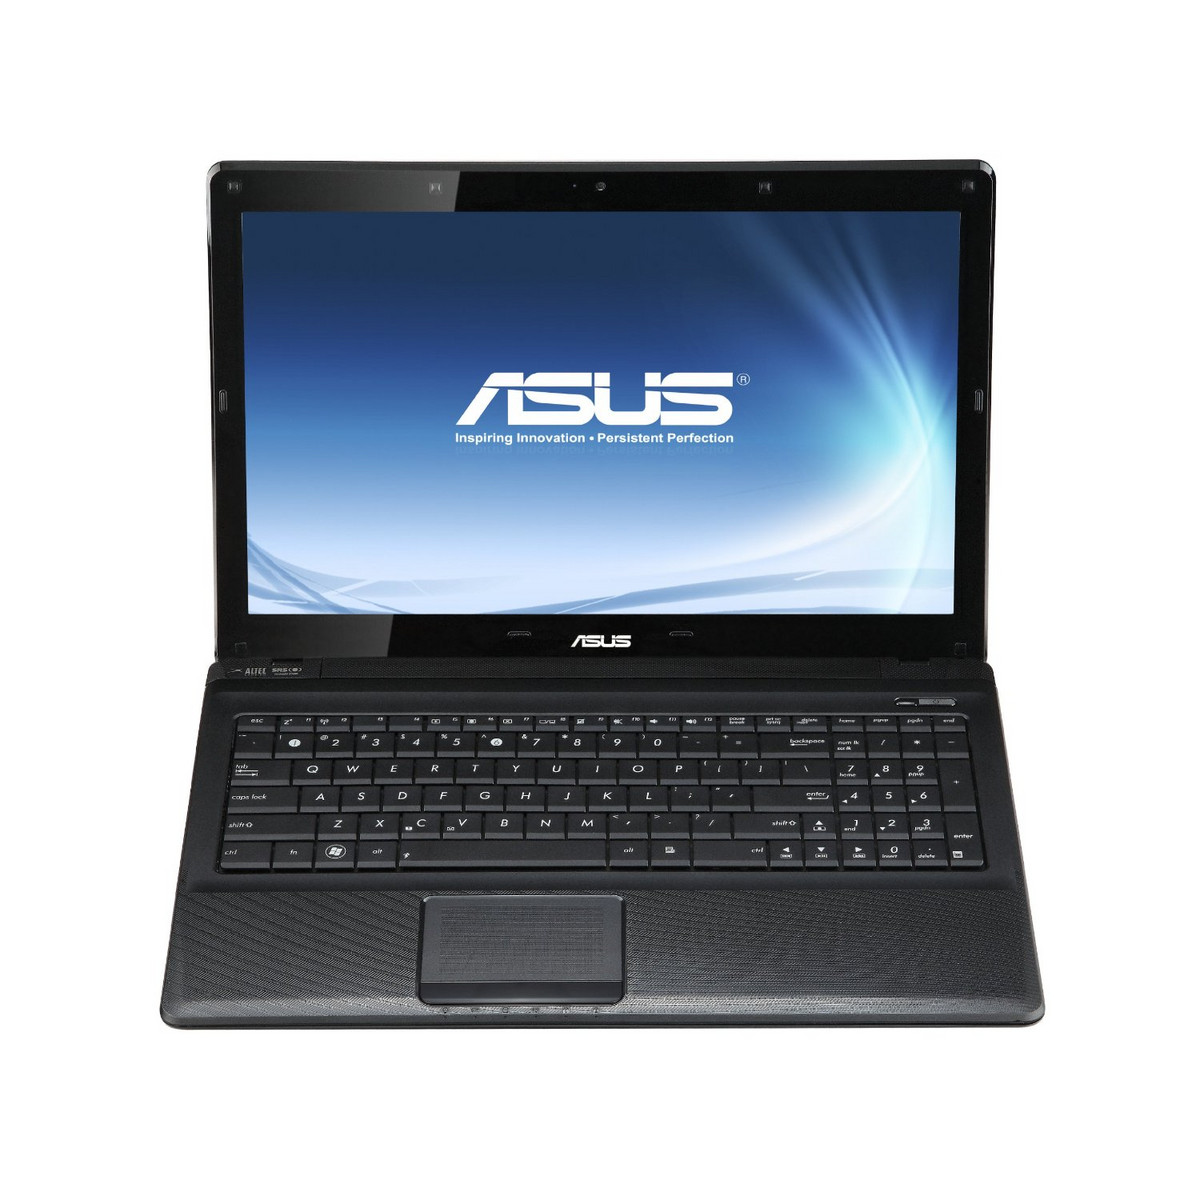 ASUS K62JR NOTEBOOK D-MAX CAMERA 64BIT DRIVER